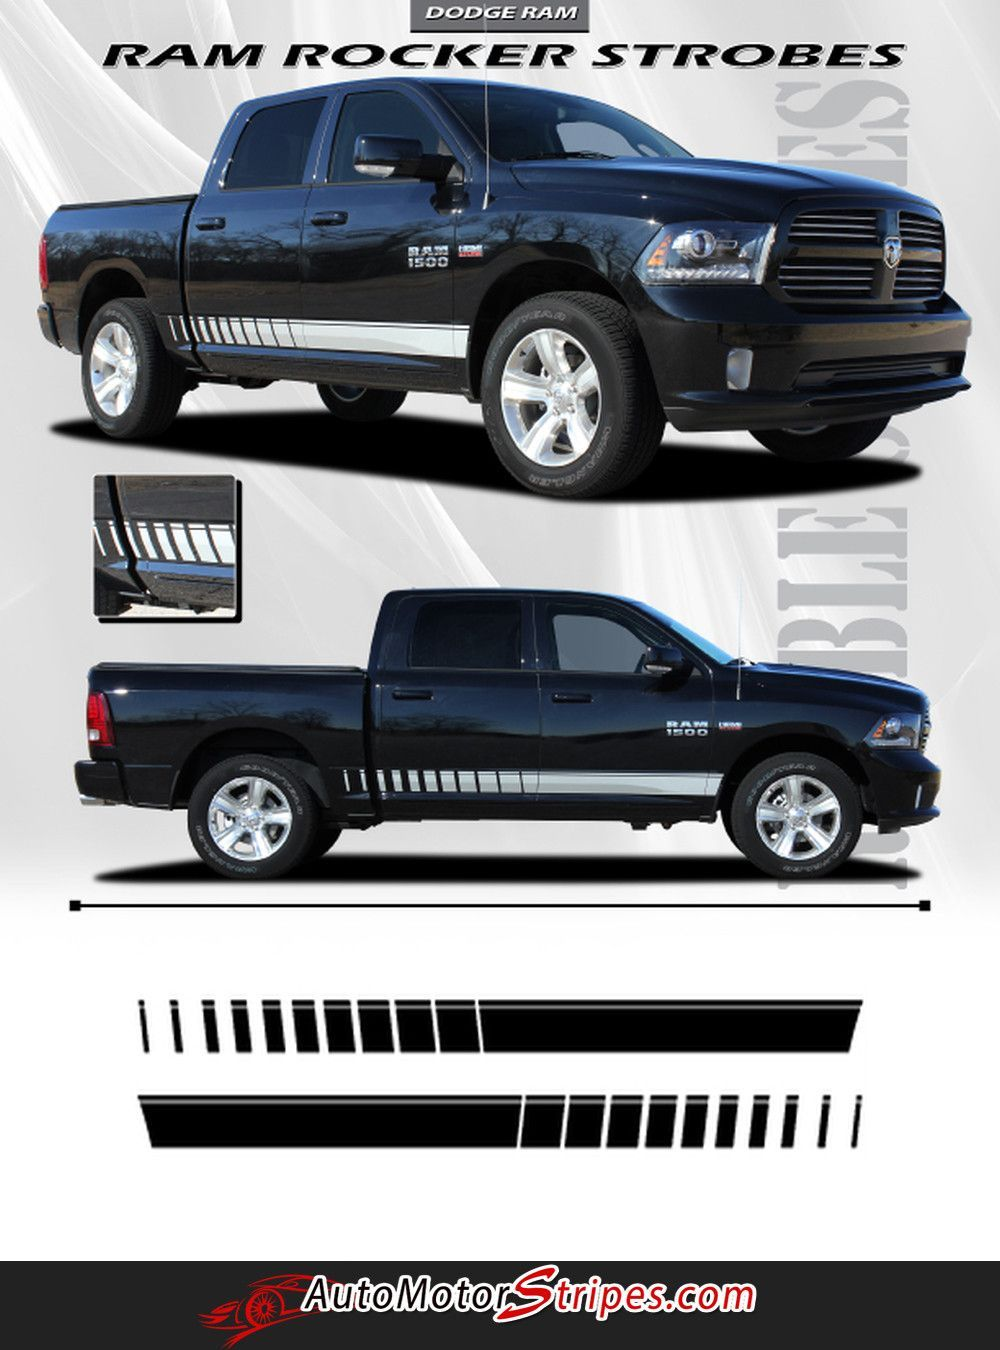 small resolution of vehicle specific style dodge ram truck lower rocker panel strobe vinyl graphic stripe decals year fitment 2009 2010 2011 2012 2013 2014 2015 2016 contents